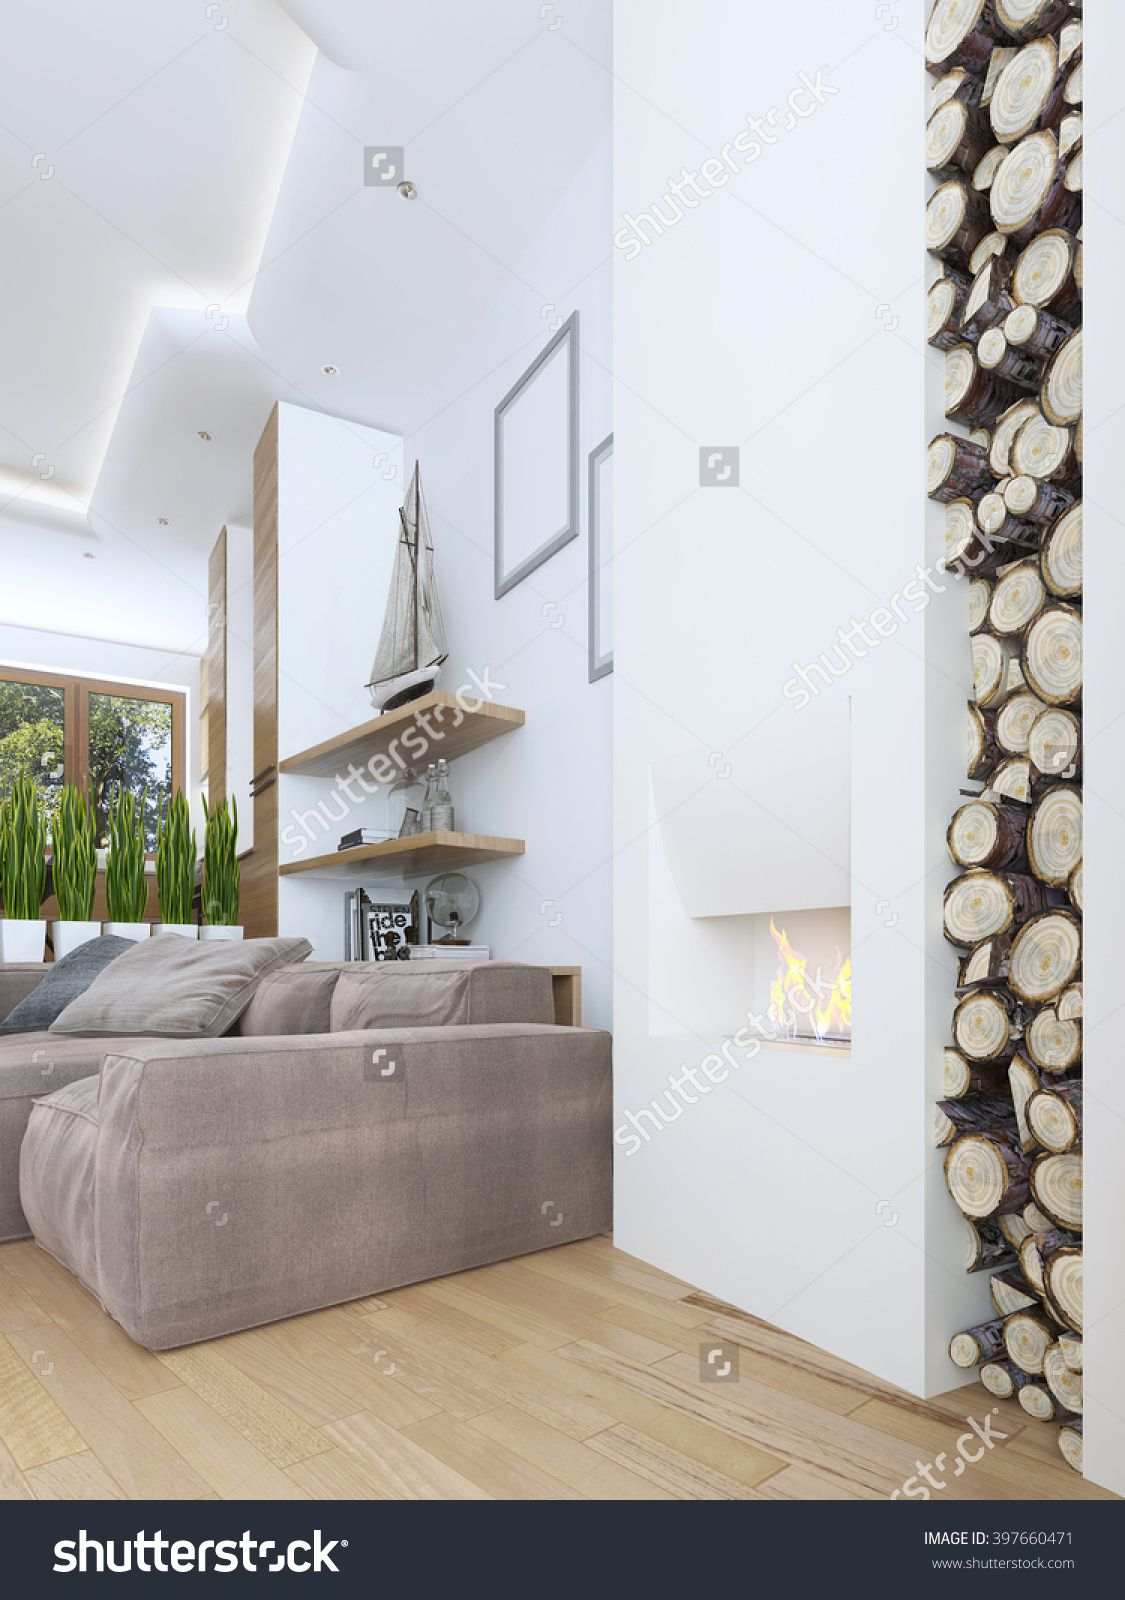 the idea of design fireplace in a modern style with a niche for